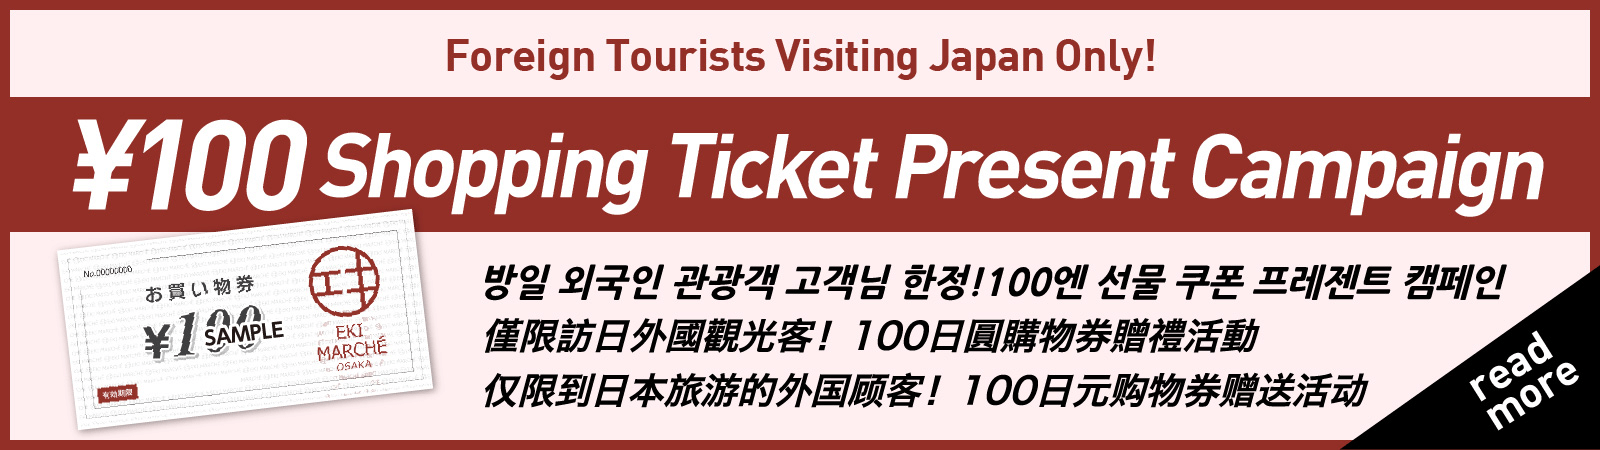 Foreign Tourists Visiting Japan Only!